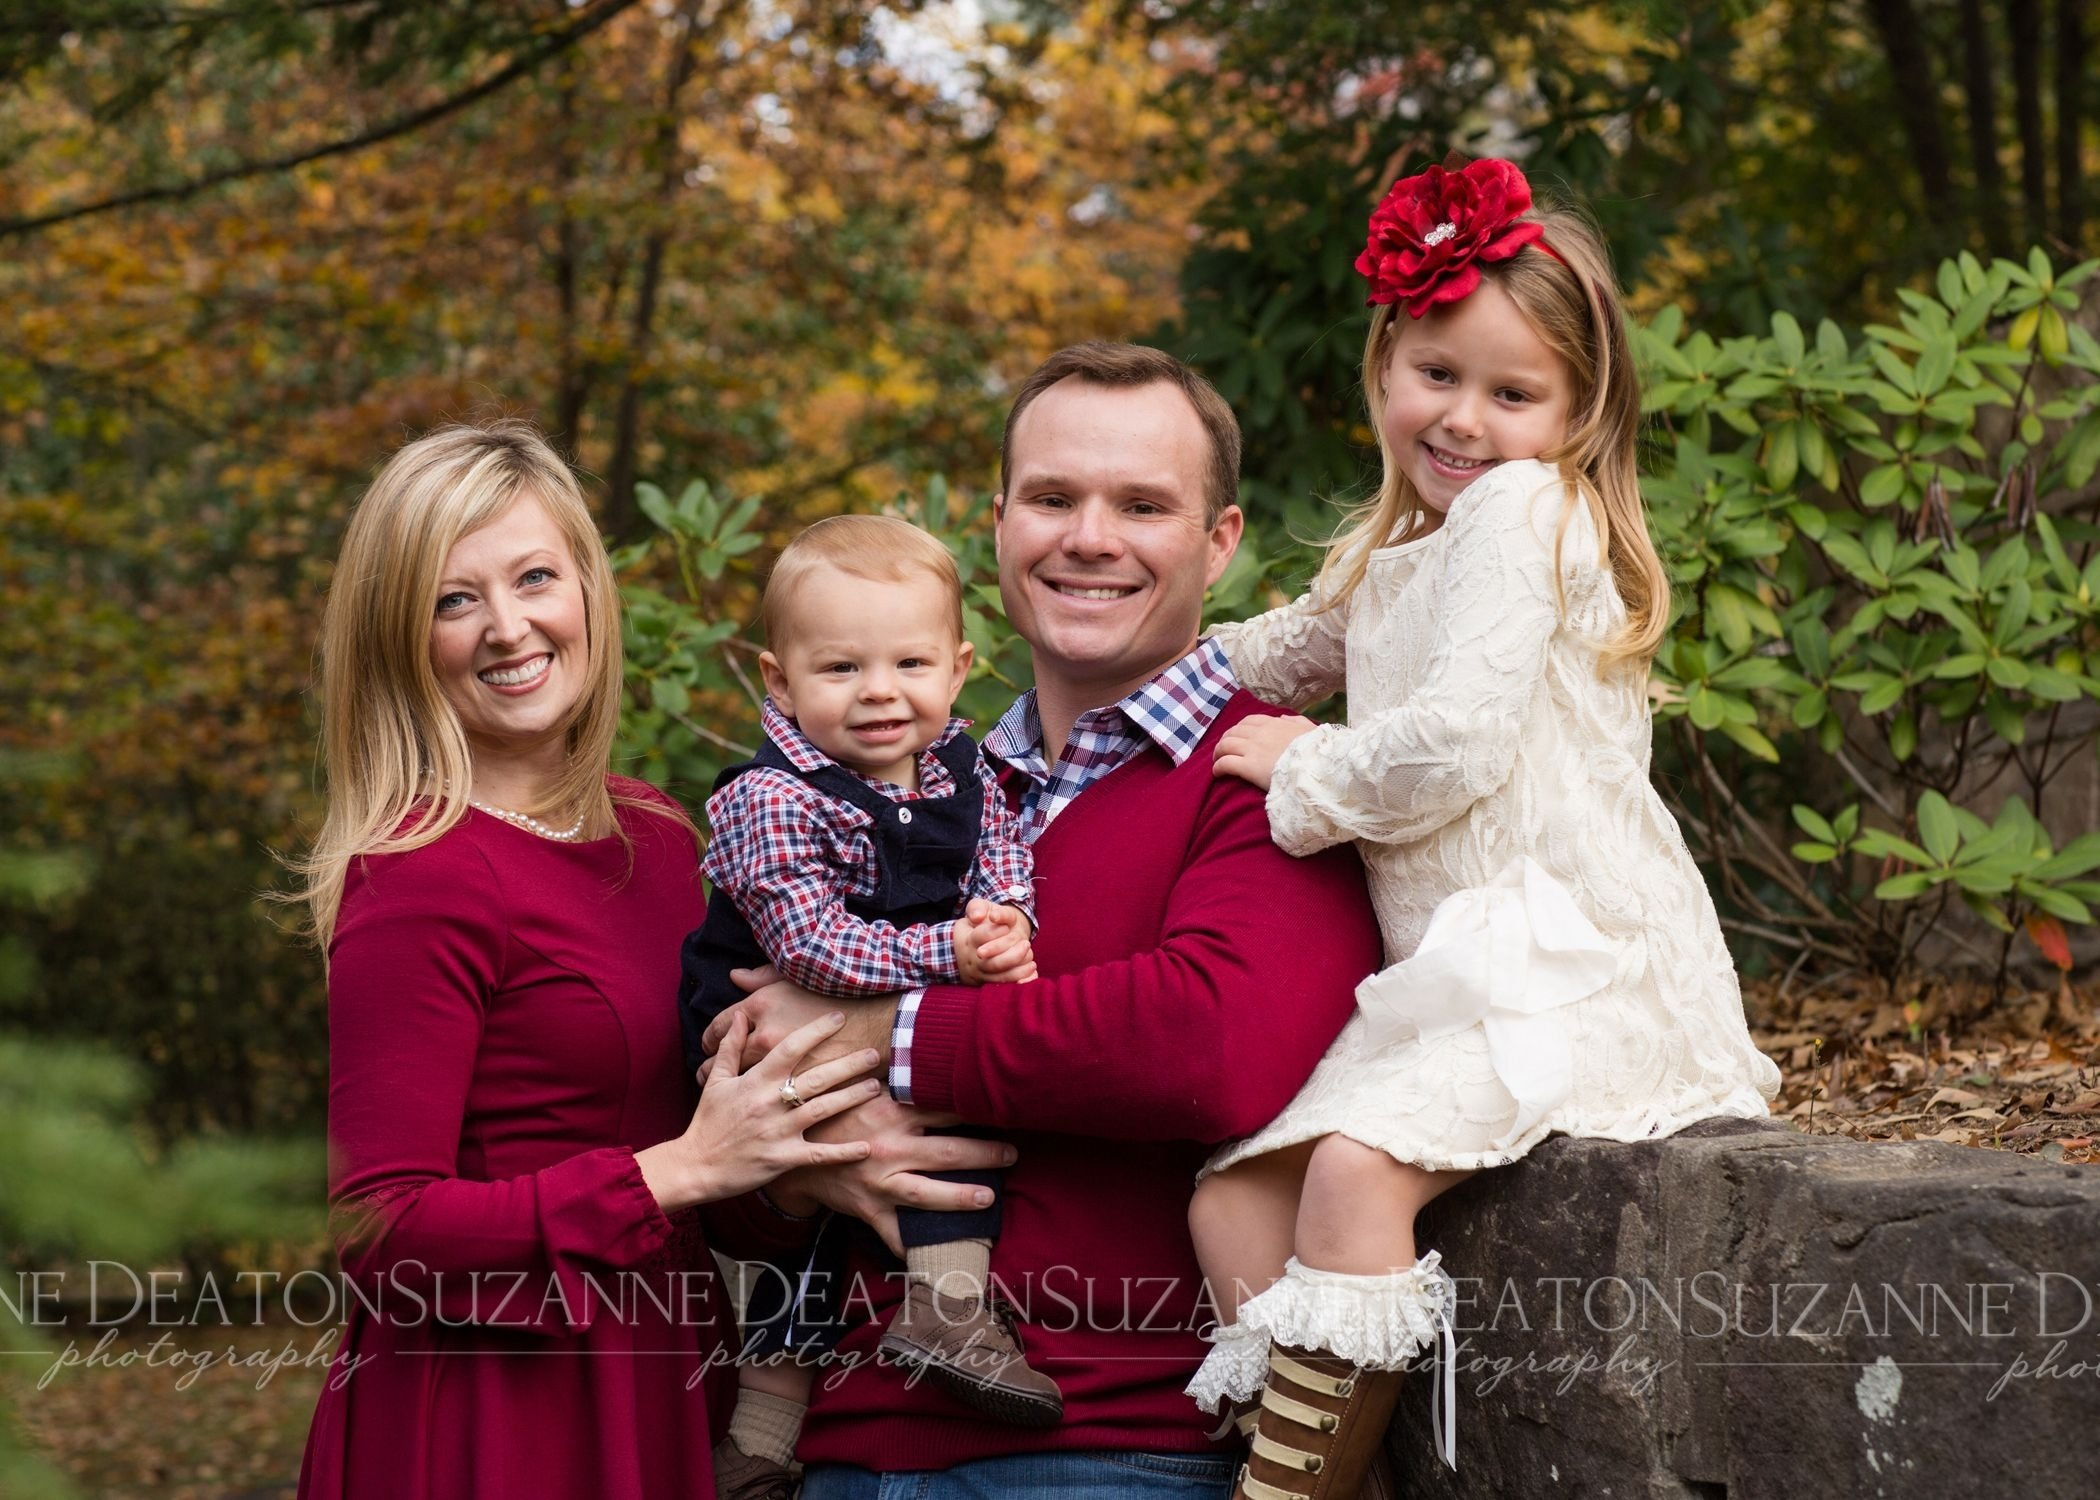 10 Stunning Fall Family Photos Clothing Ideas family pictures fall family portraits family clothing ideas 7 2020